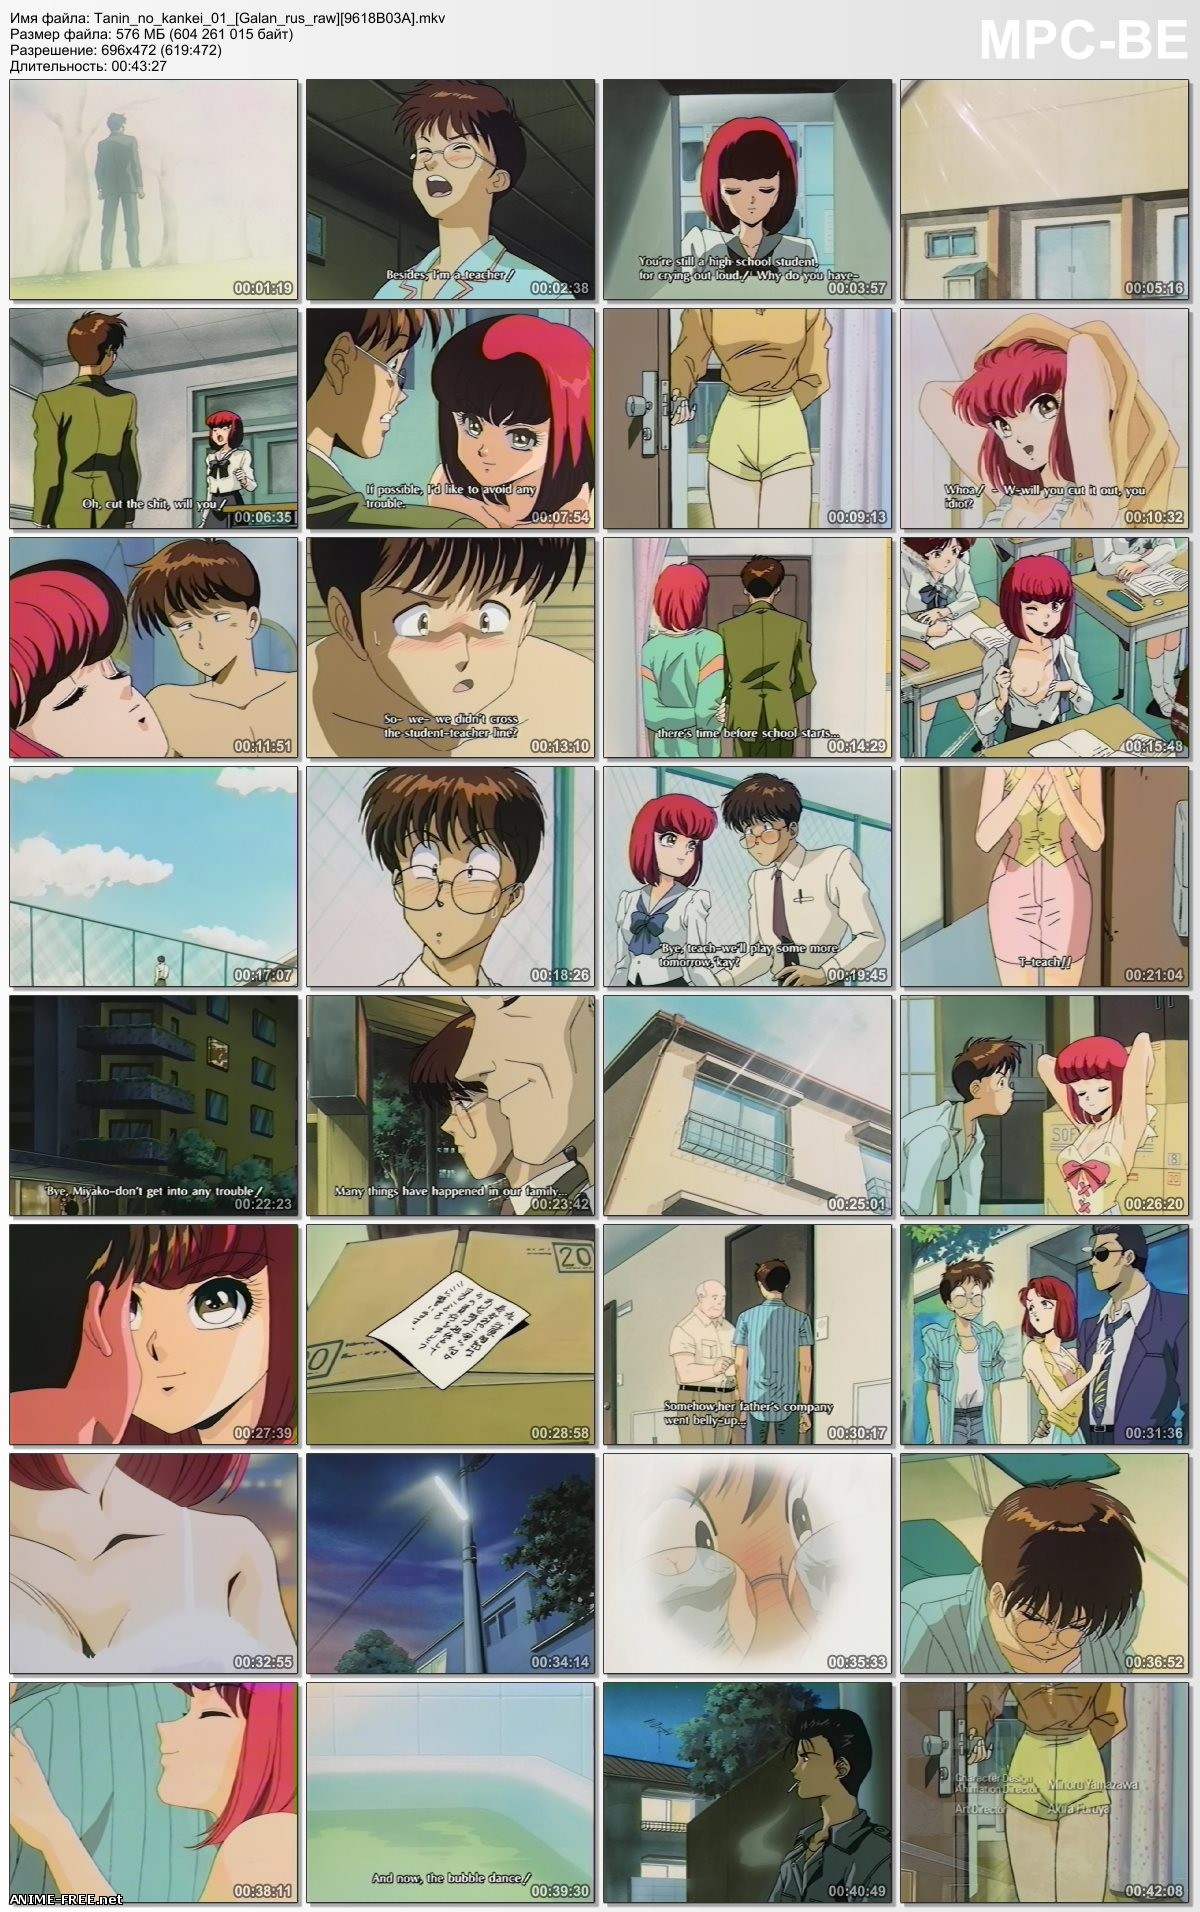 Homeroom Affairs / Human Relations / Tanin no Kankei / Человеческие отношения [OVA] [1994] [Ep.1-2] [RUS,ENG,JAP,UKR] Ecchi